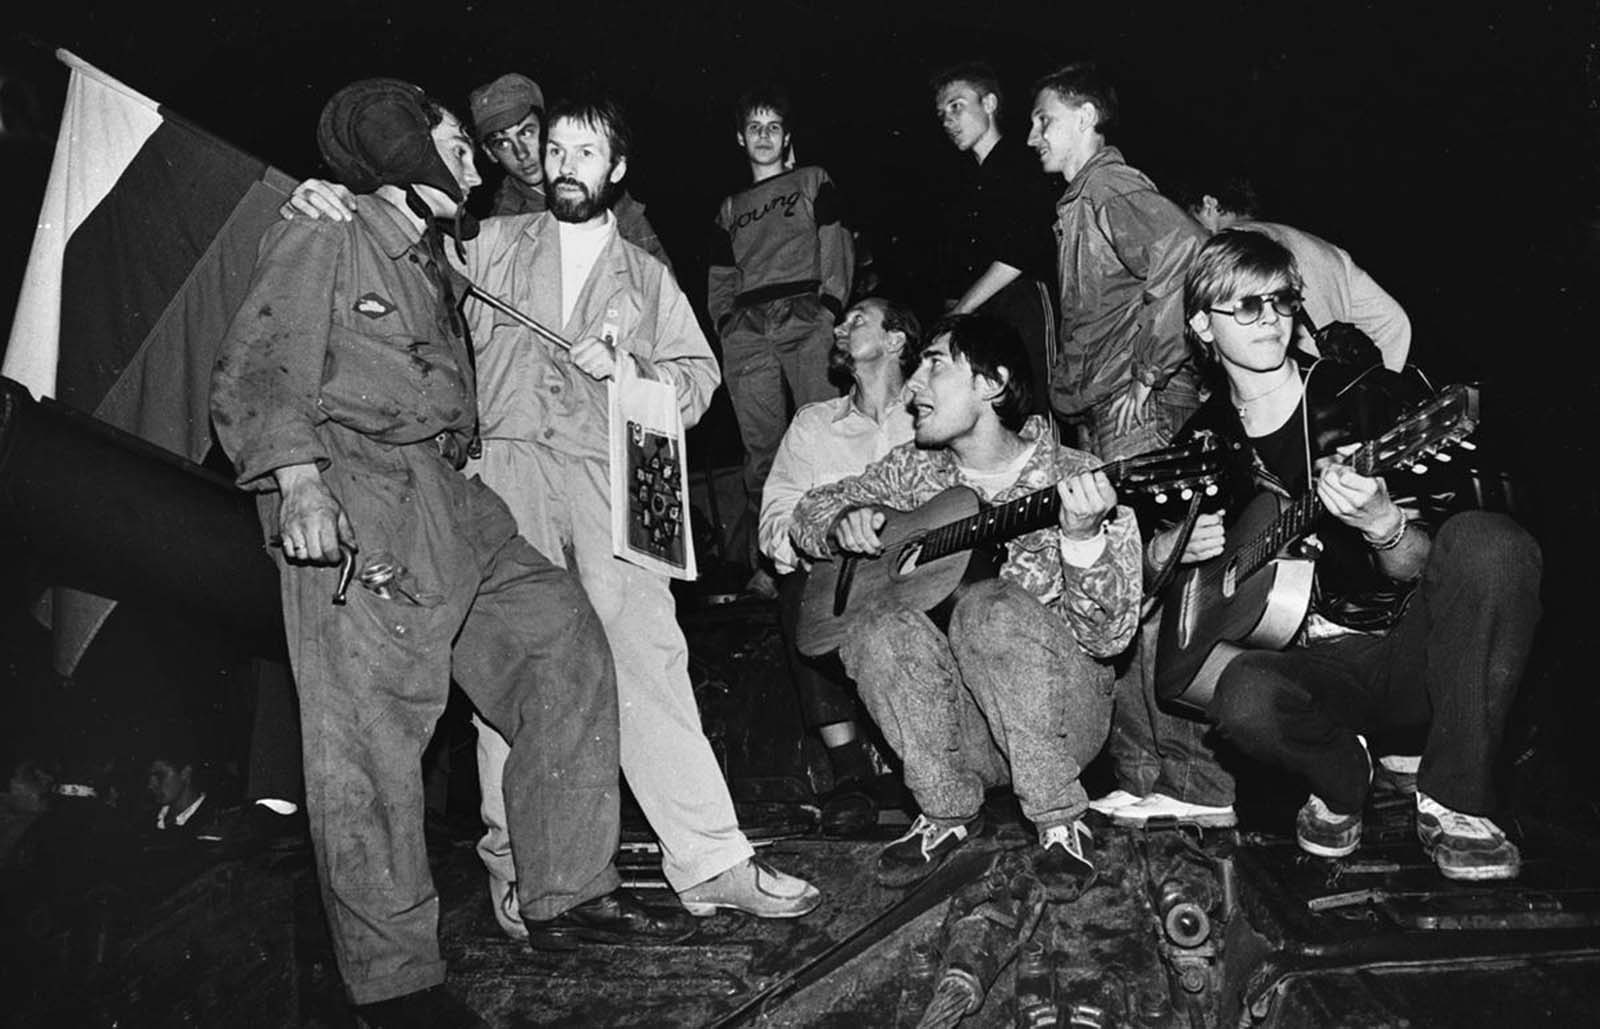 Residents play music and talk to soldiers in front of the Russian White House in central Moscow early on August 20, 1991.